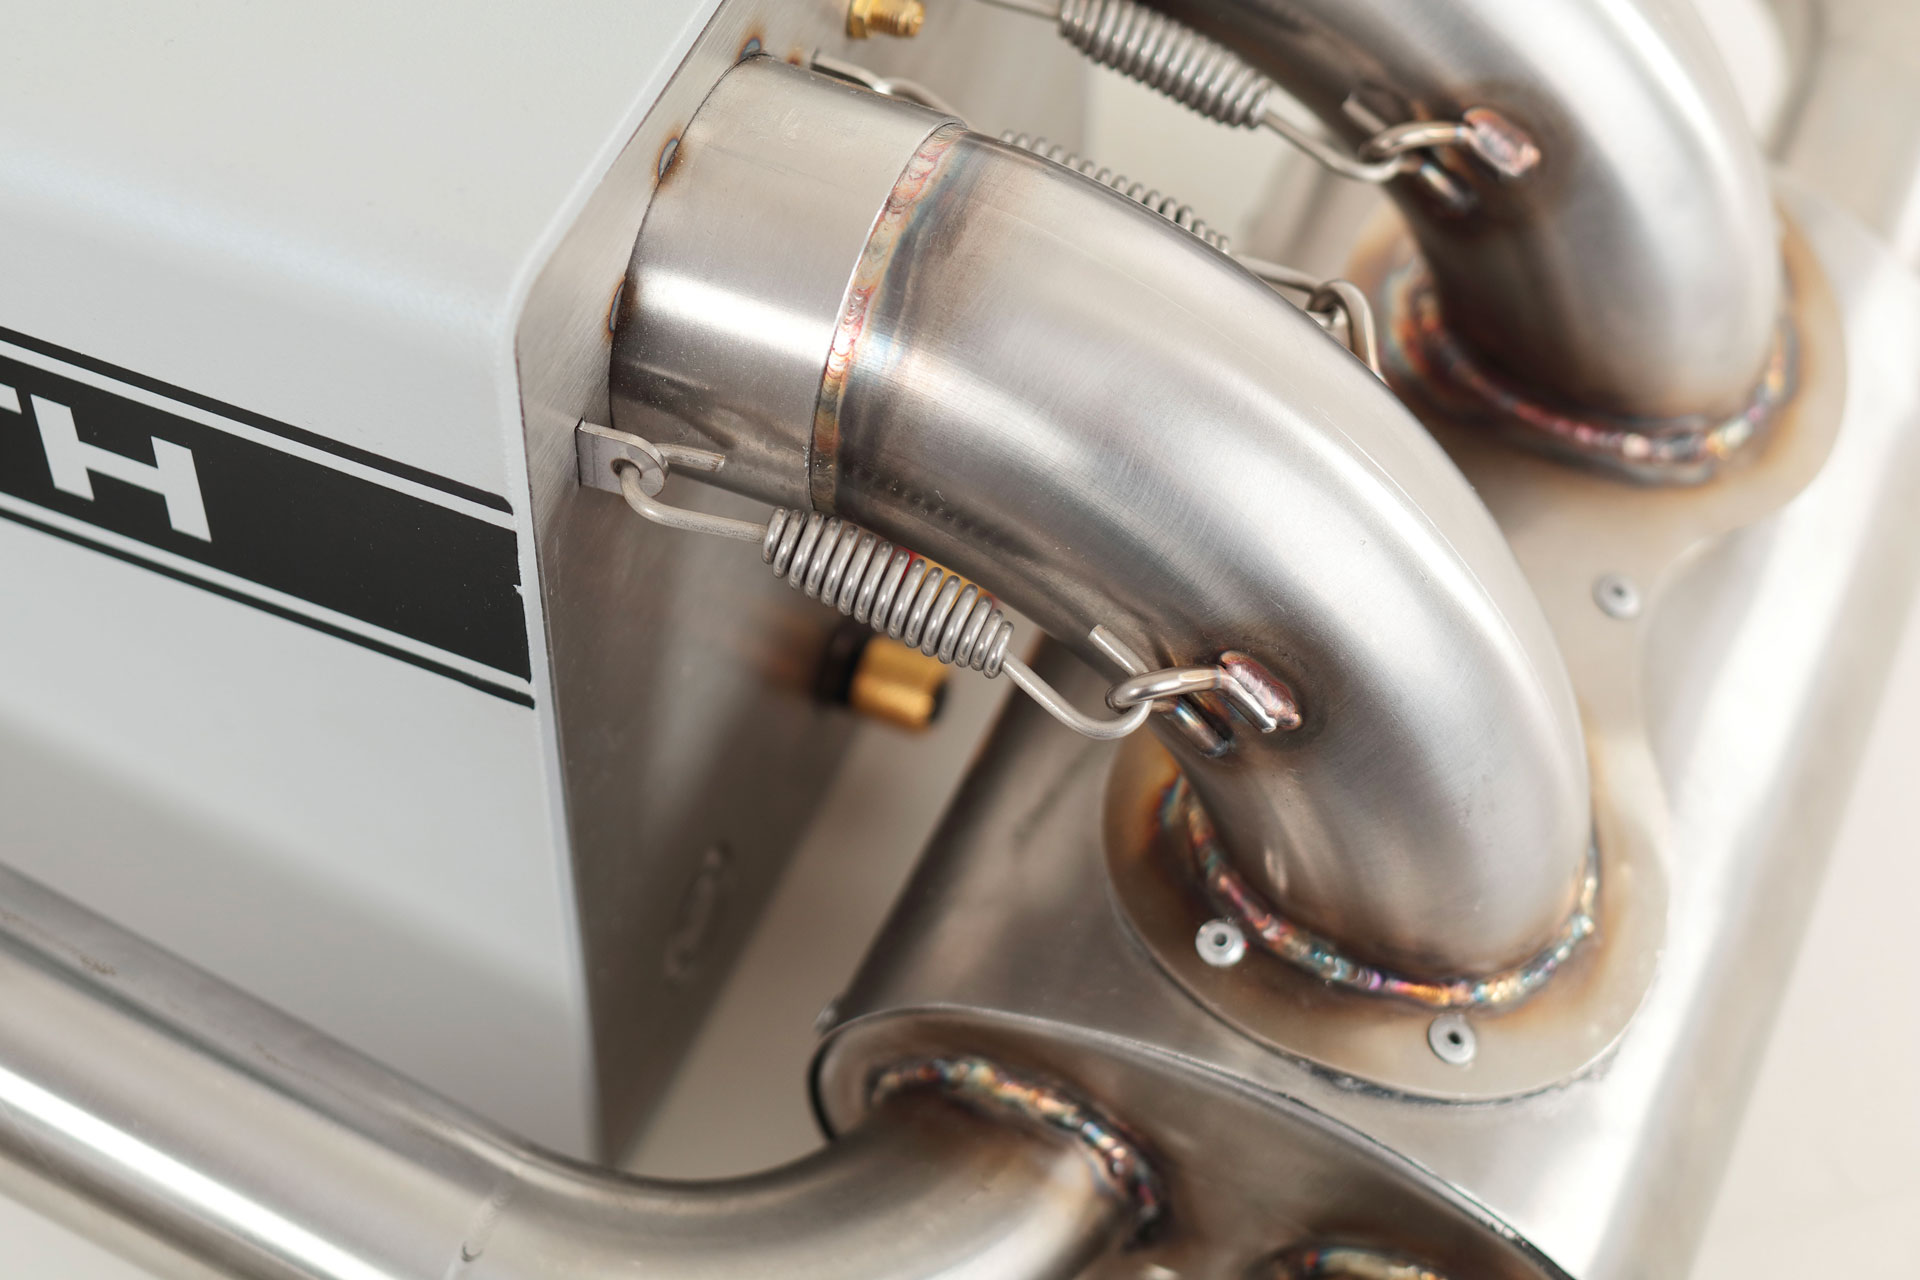 IXOOST KUBO ABARTH 595 - real active exhaust pipes with bass reflex function